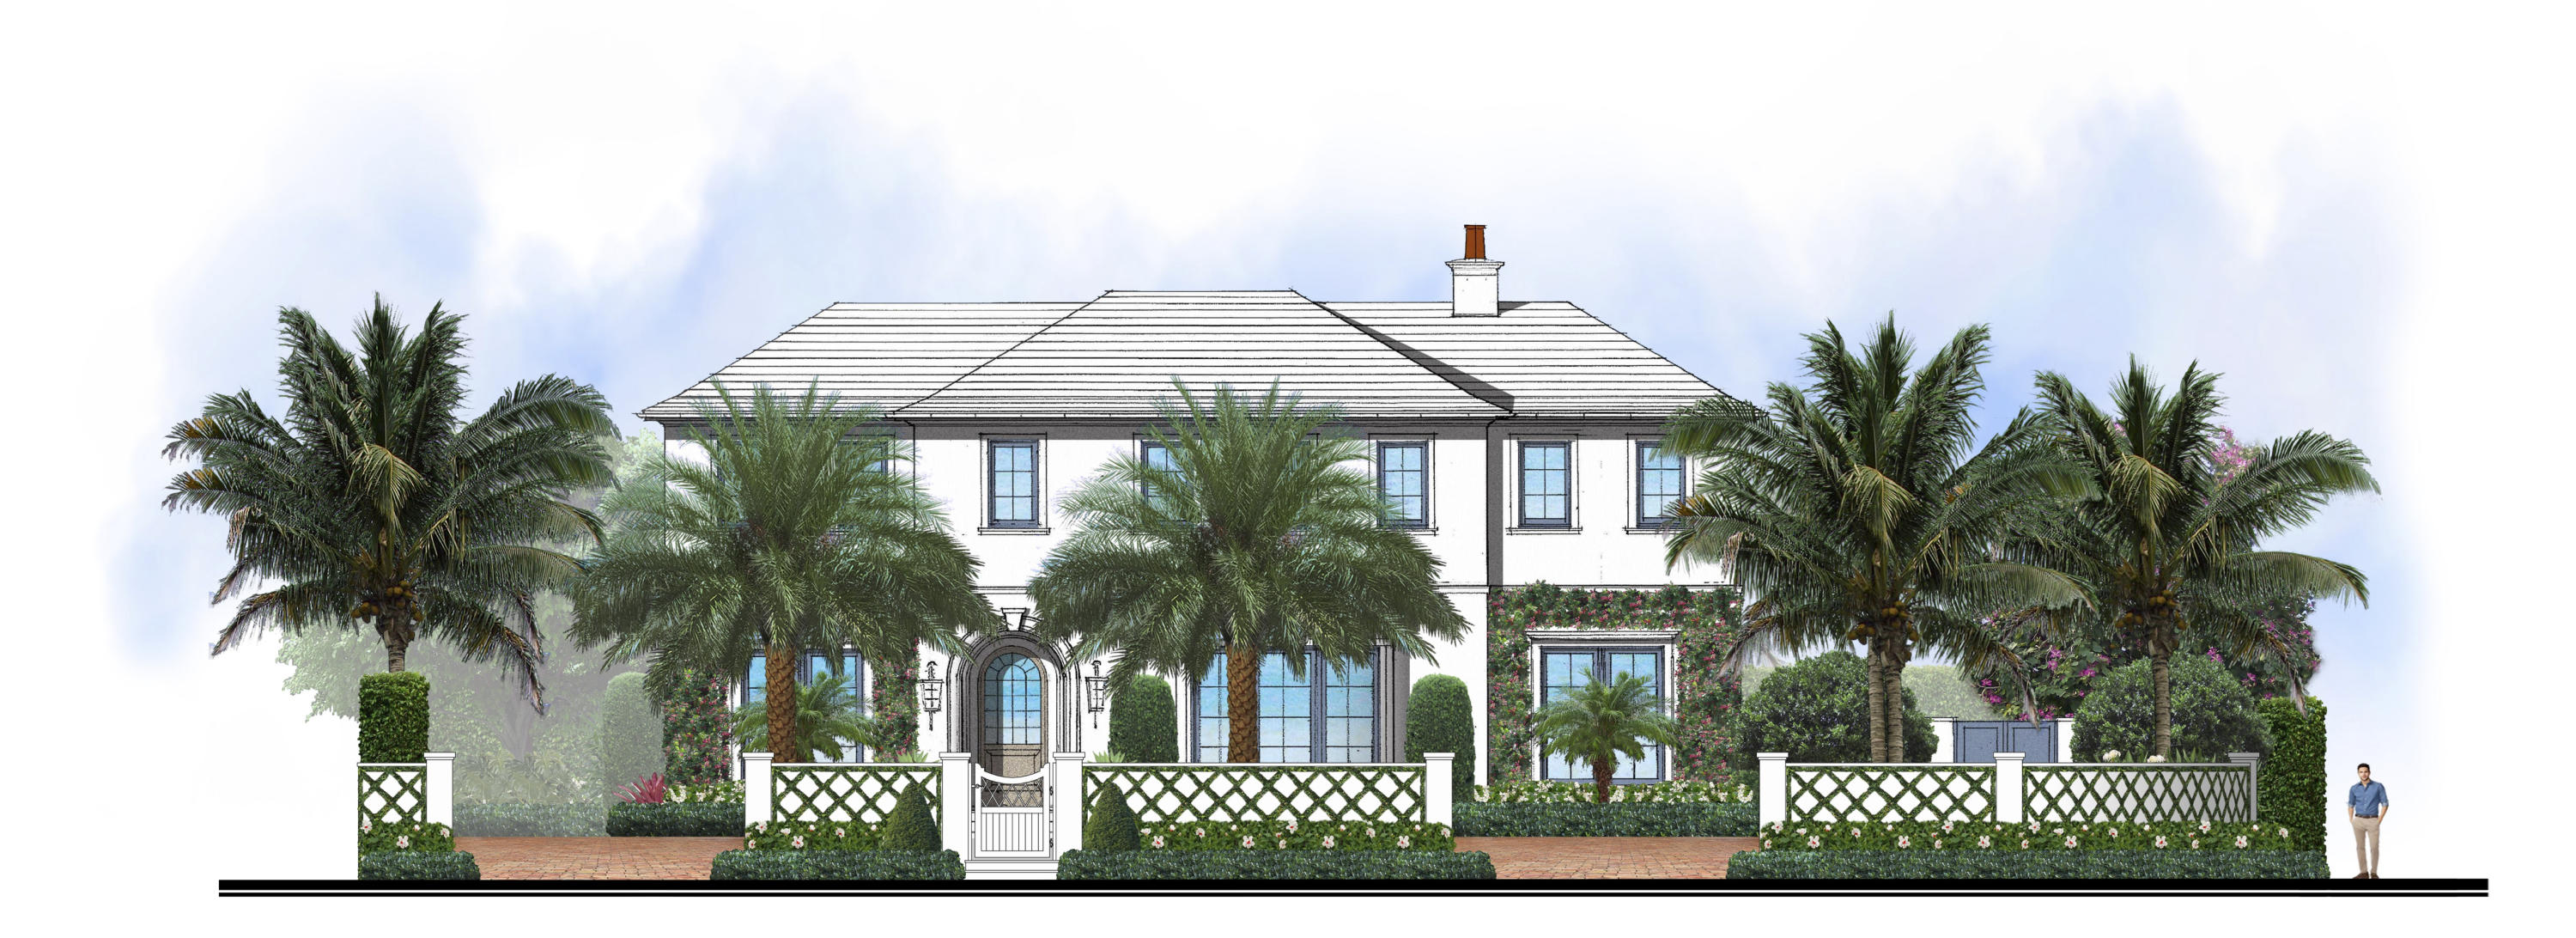 Photo of 250 Indian Road, Palm Beach, FL 33480